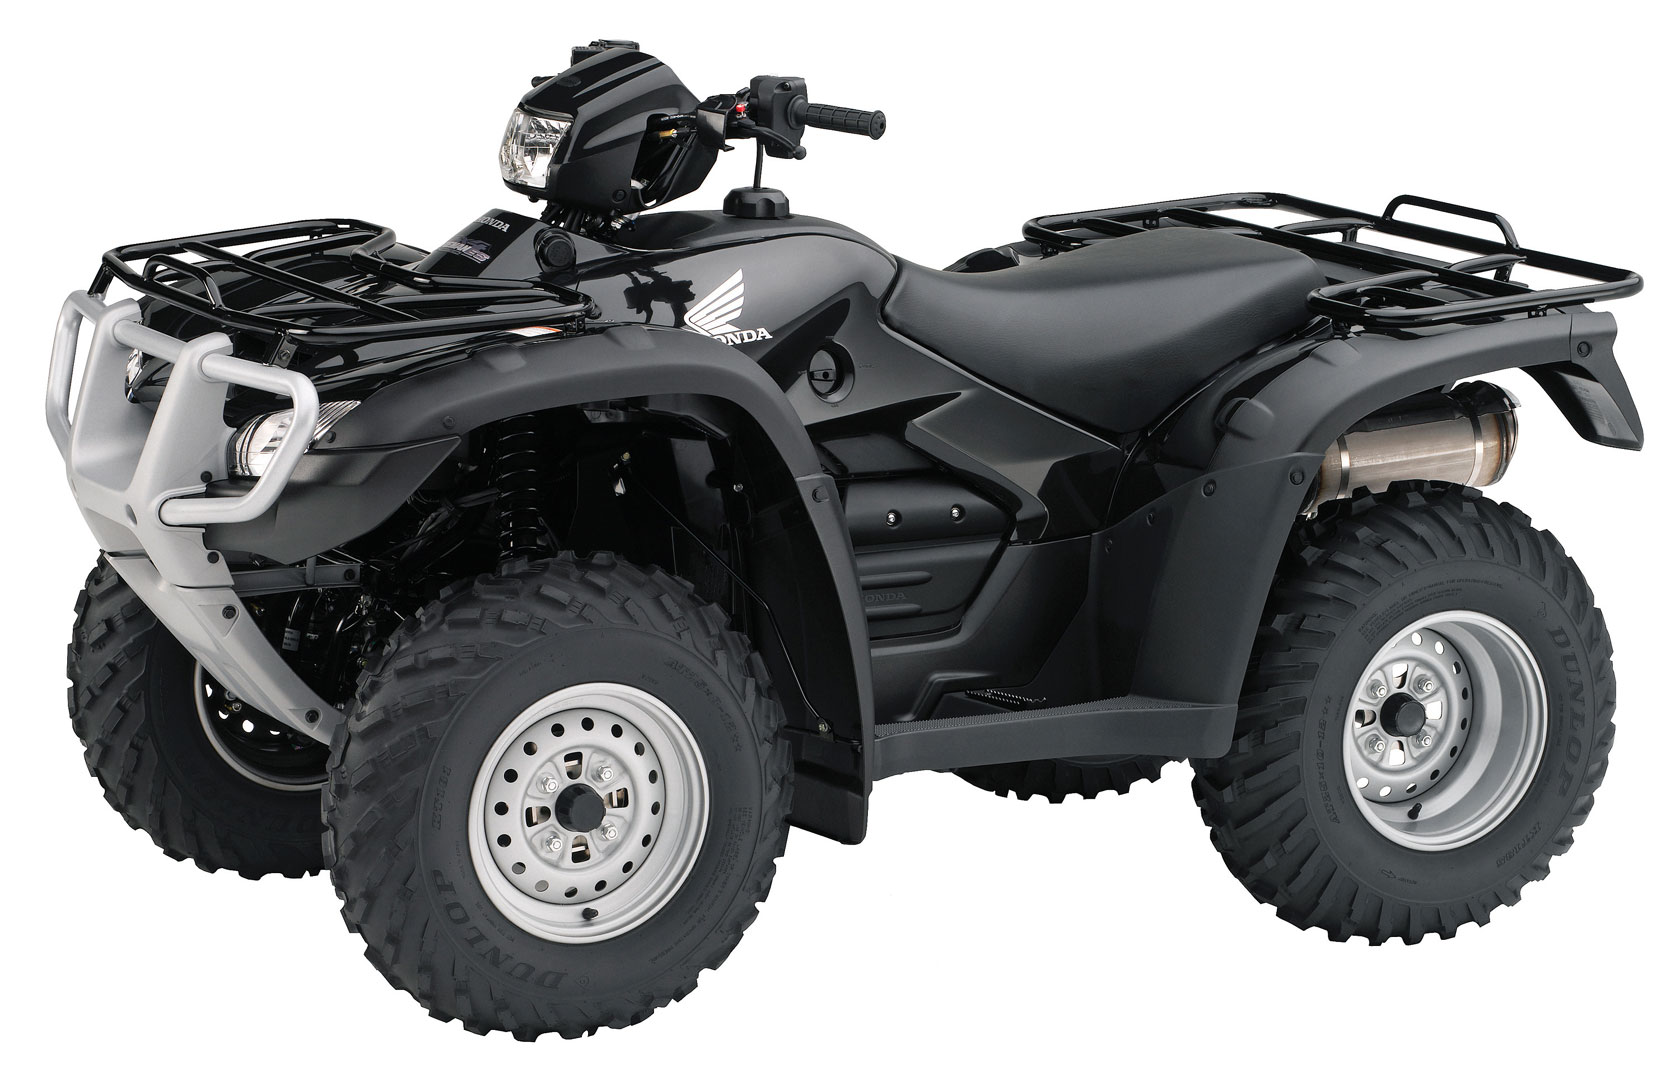 2009 honda fourtrax foreman 4x4 es with power steering trx500fpe. Black Bedroom Furniture Sets. Home Design Ideas